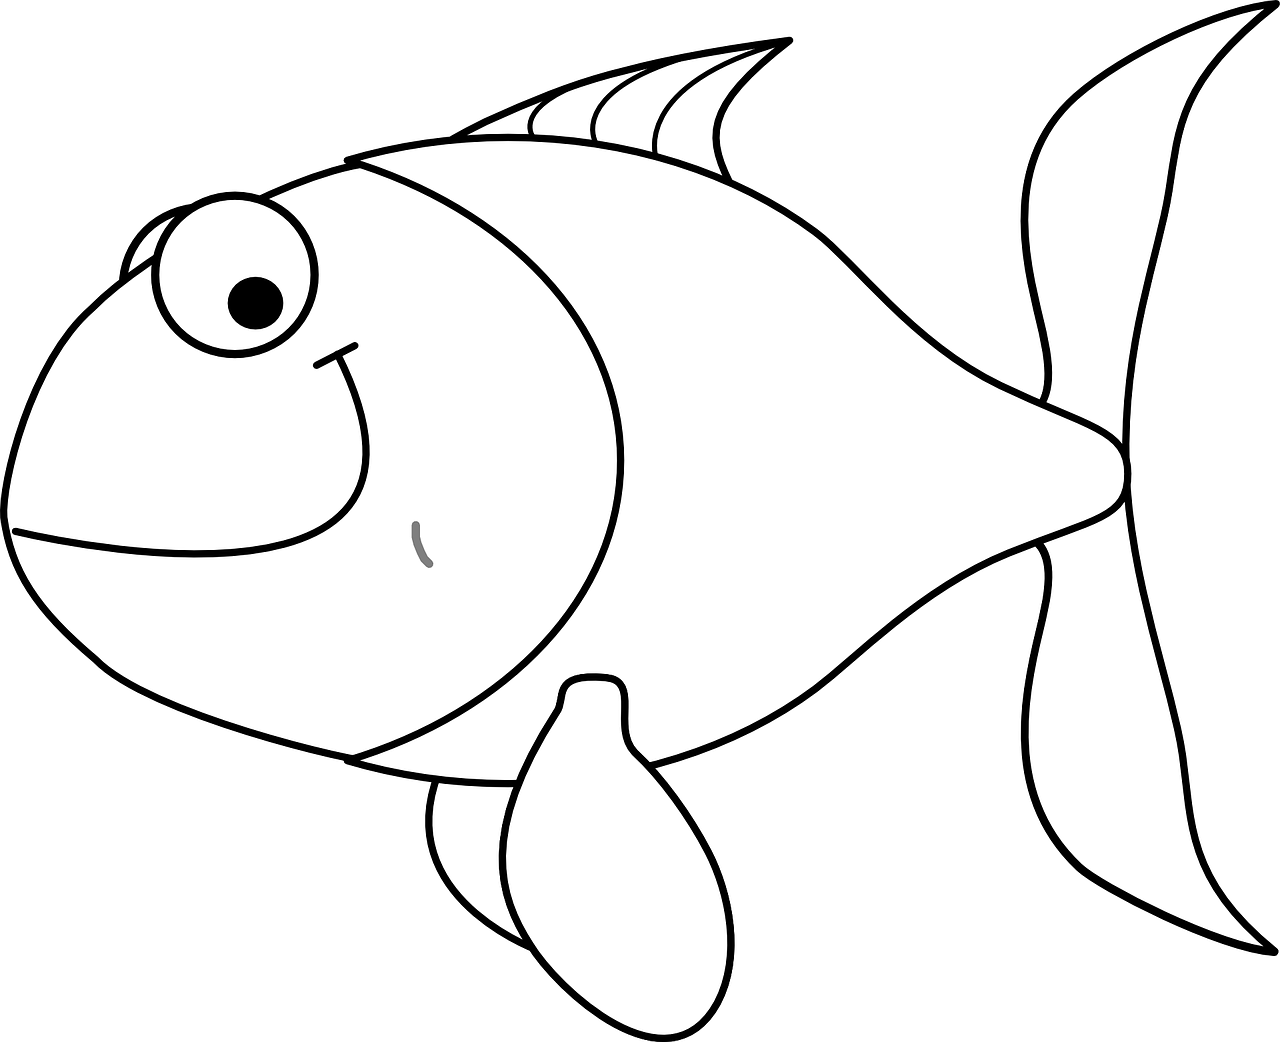 Fish coloring pages for kids 14 pics how to draw in 1 for Free coloring fish pages